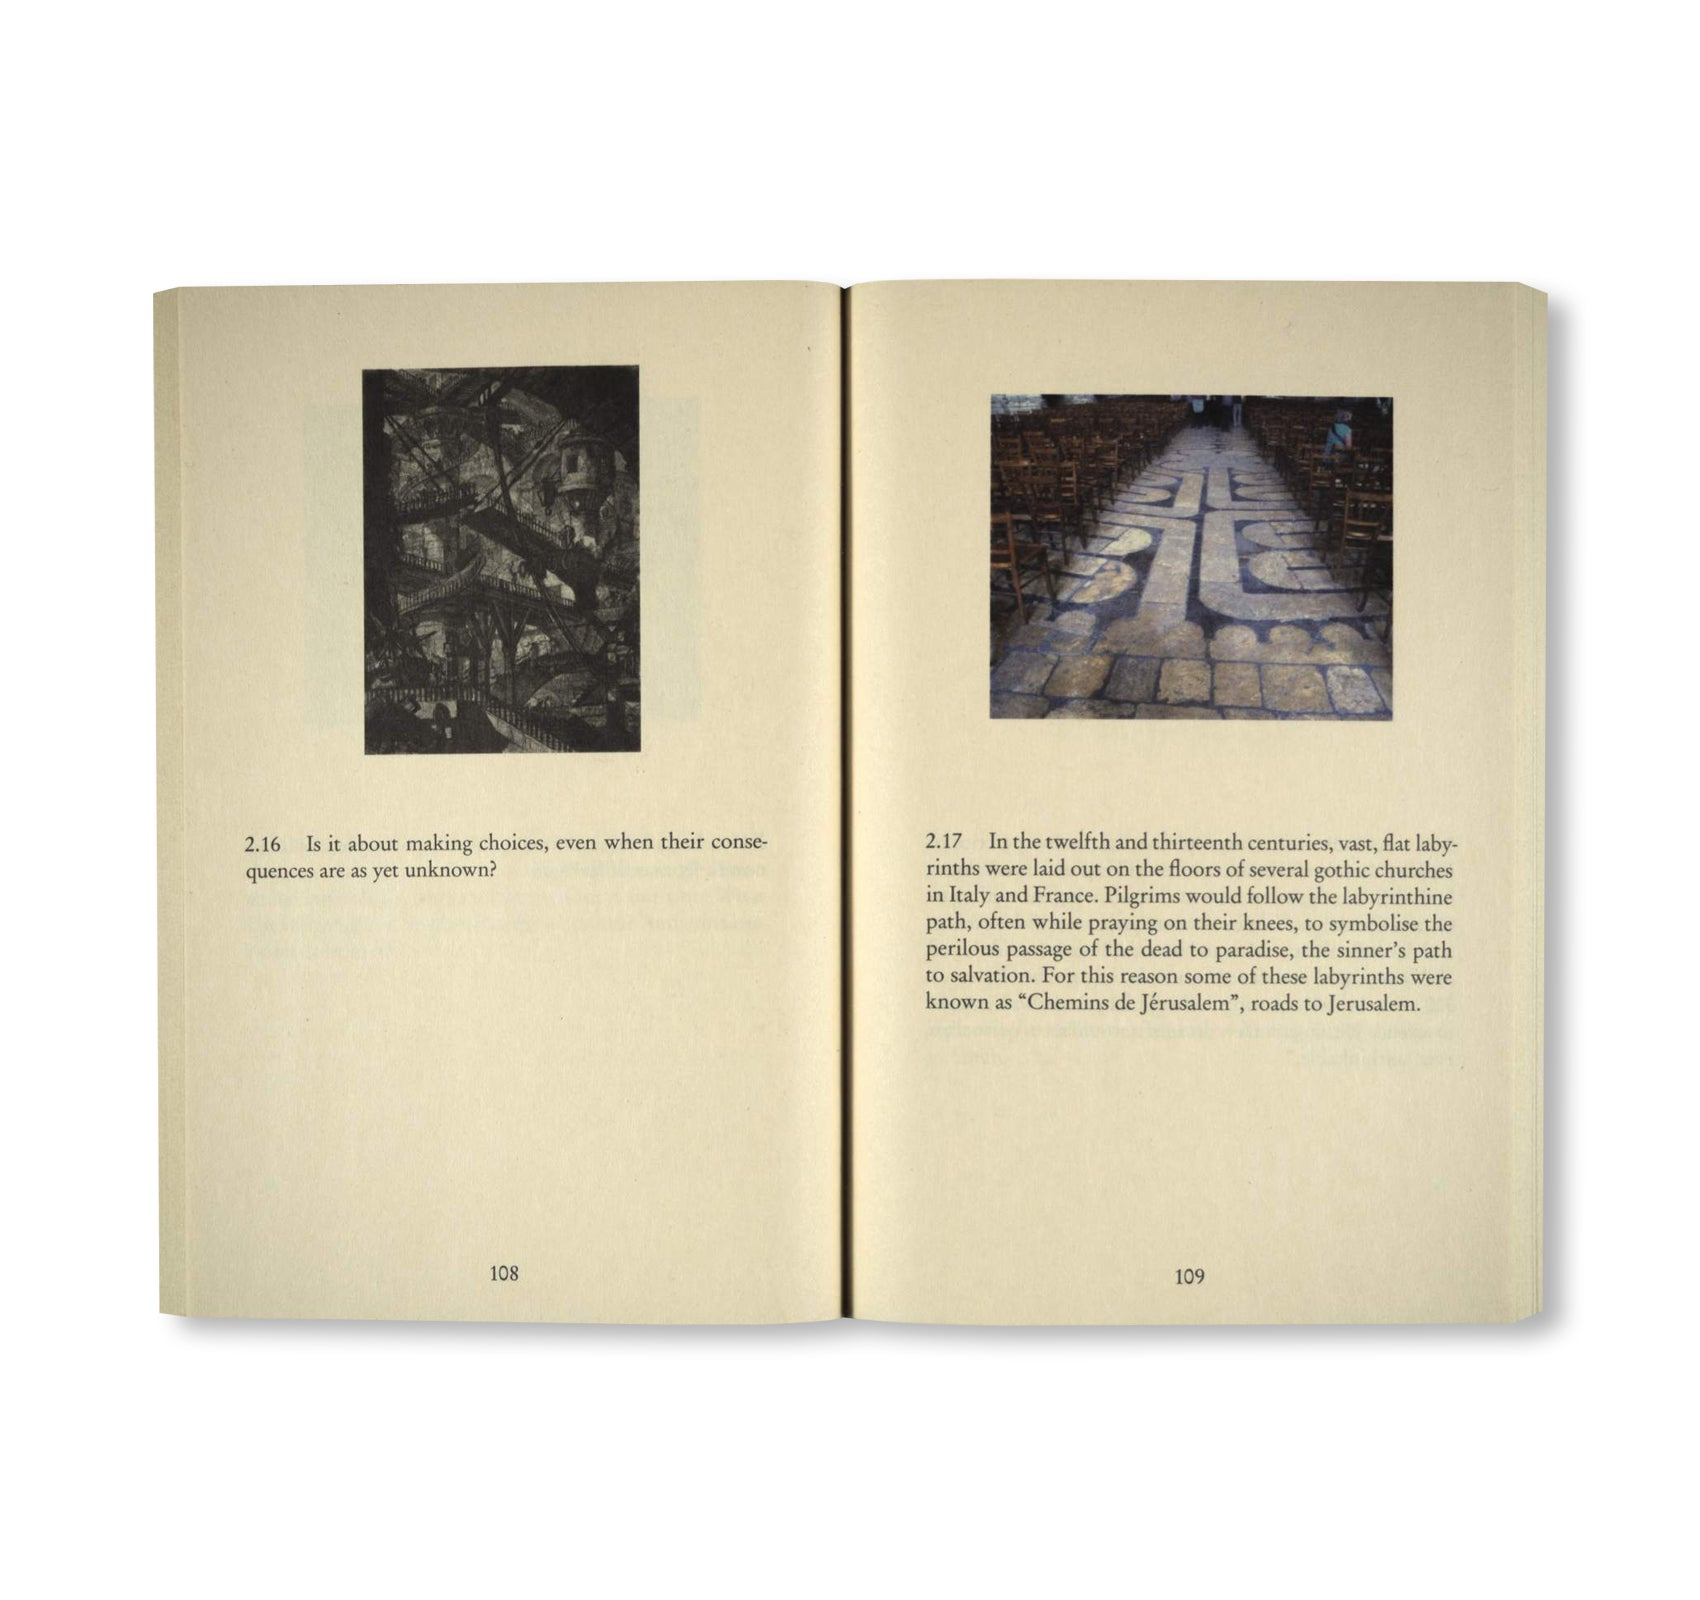 LABYRINTH - FOUR TIMES THROUGH THE LABYRINTH by Olaf Nicolai, Jan Wenzel